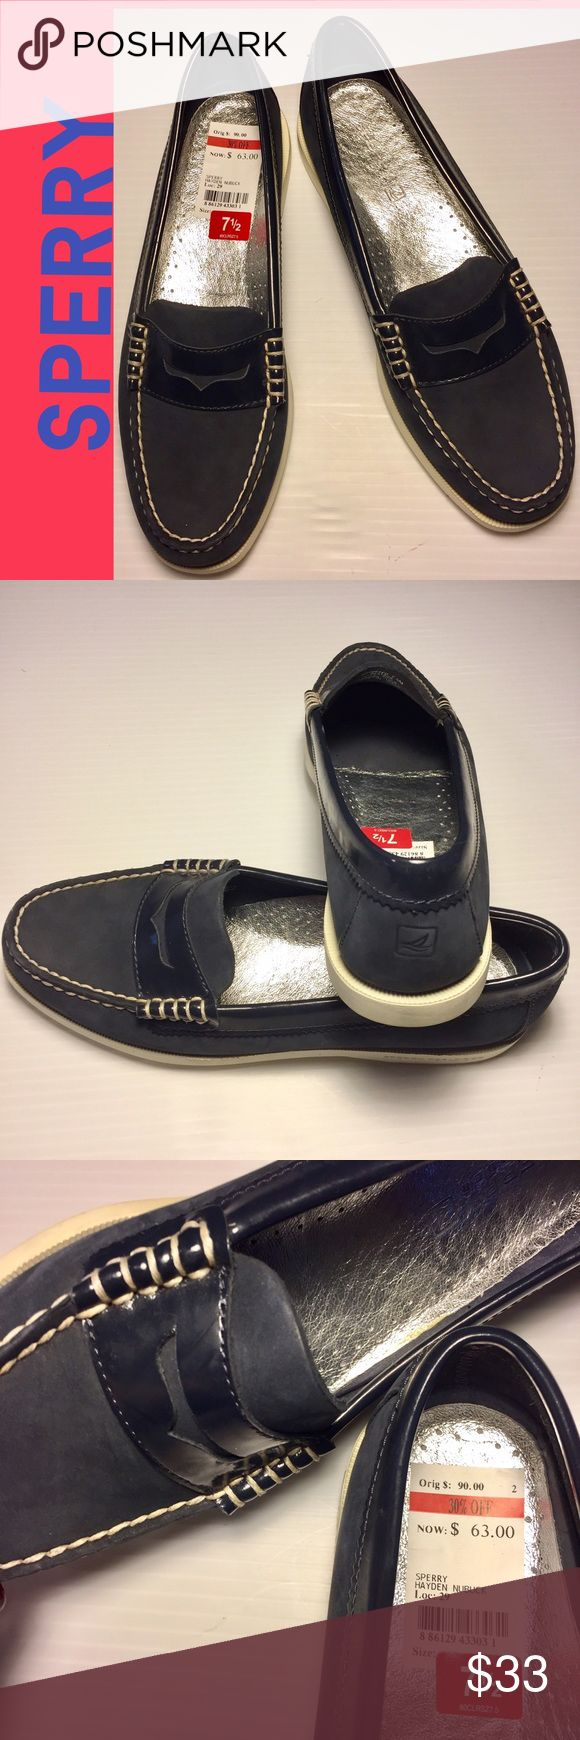 """SPERRY Top-Sider NWT Navy Blue Penny Loafer 7.5 SPERRY Top-Sider NWT New with Tags Navy Blue Penny Loafers """"Hayden Nubuck"""". Casual slip-on. Leather uppers. Non-Marking outsoles, excellent traction. Silver leather insoles. EVA heel cup for comfort & shock absorption. Original retail $90, sale price was $63.  Tried on but not worn, perfect condition, brand new! Size 7.5. (#236) Sperry Top-Sider Shoes Flats & Loafers"""